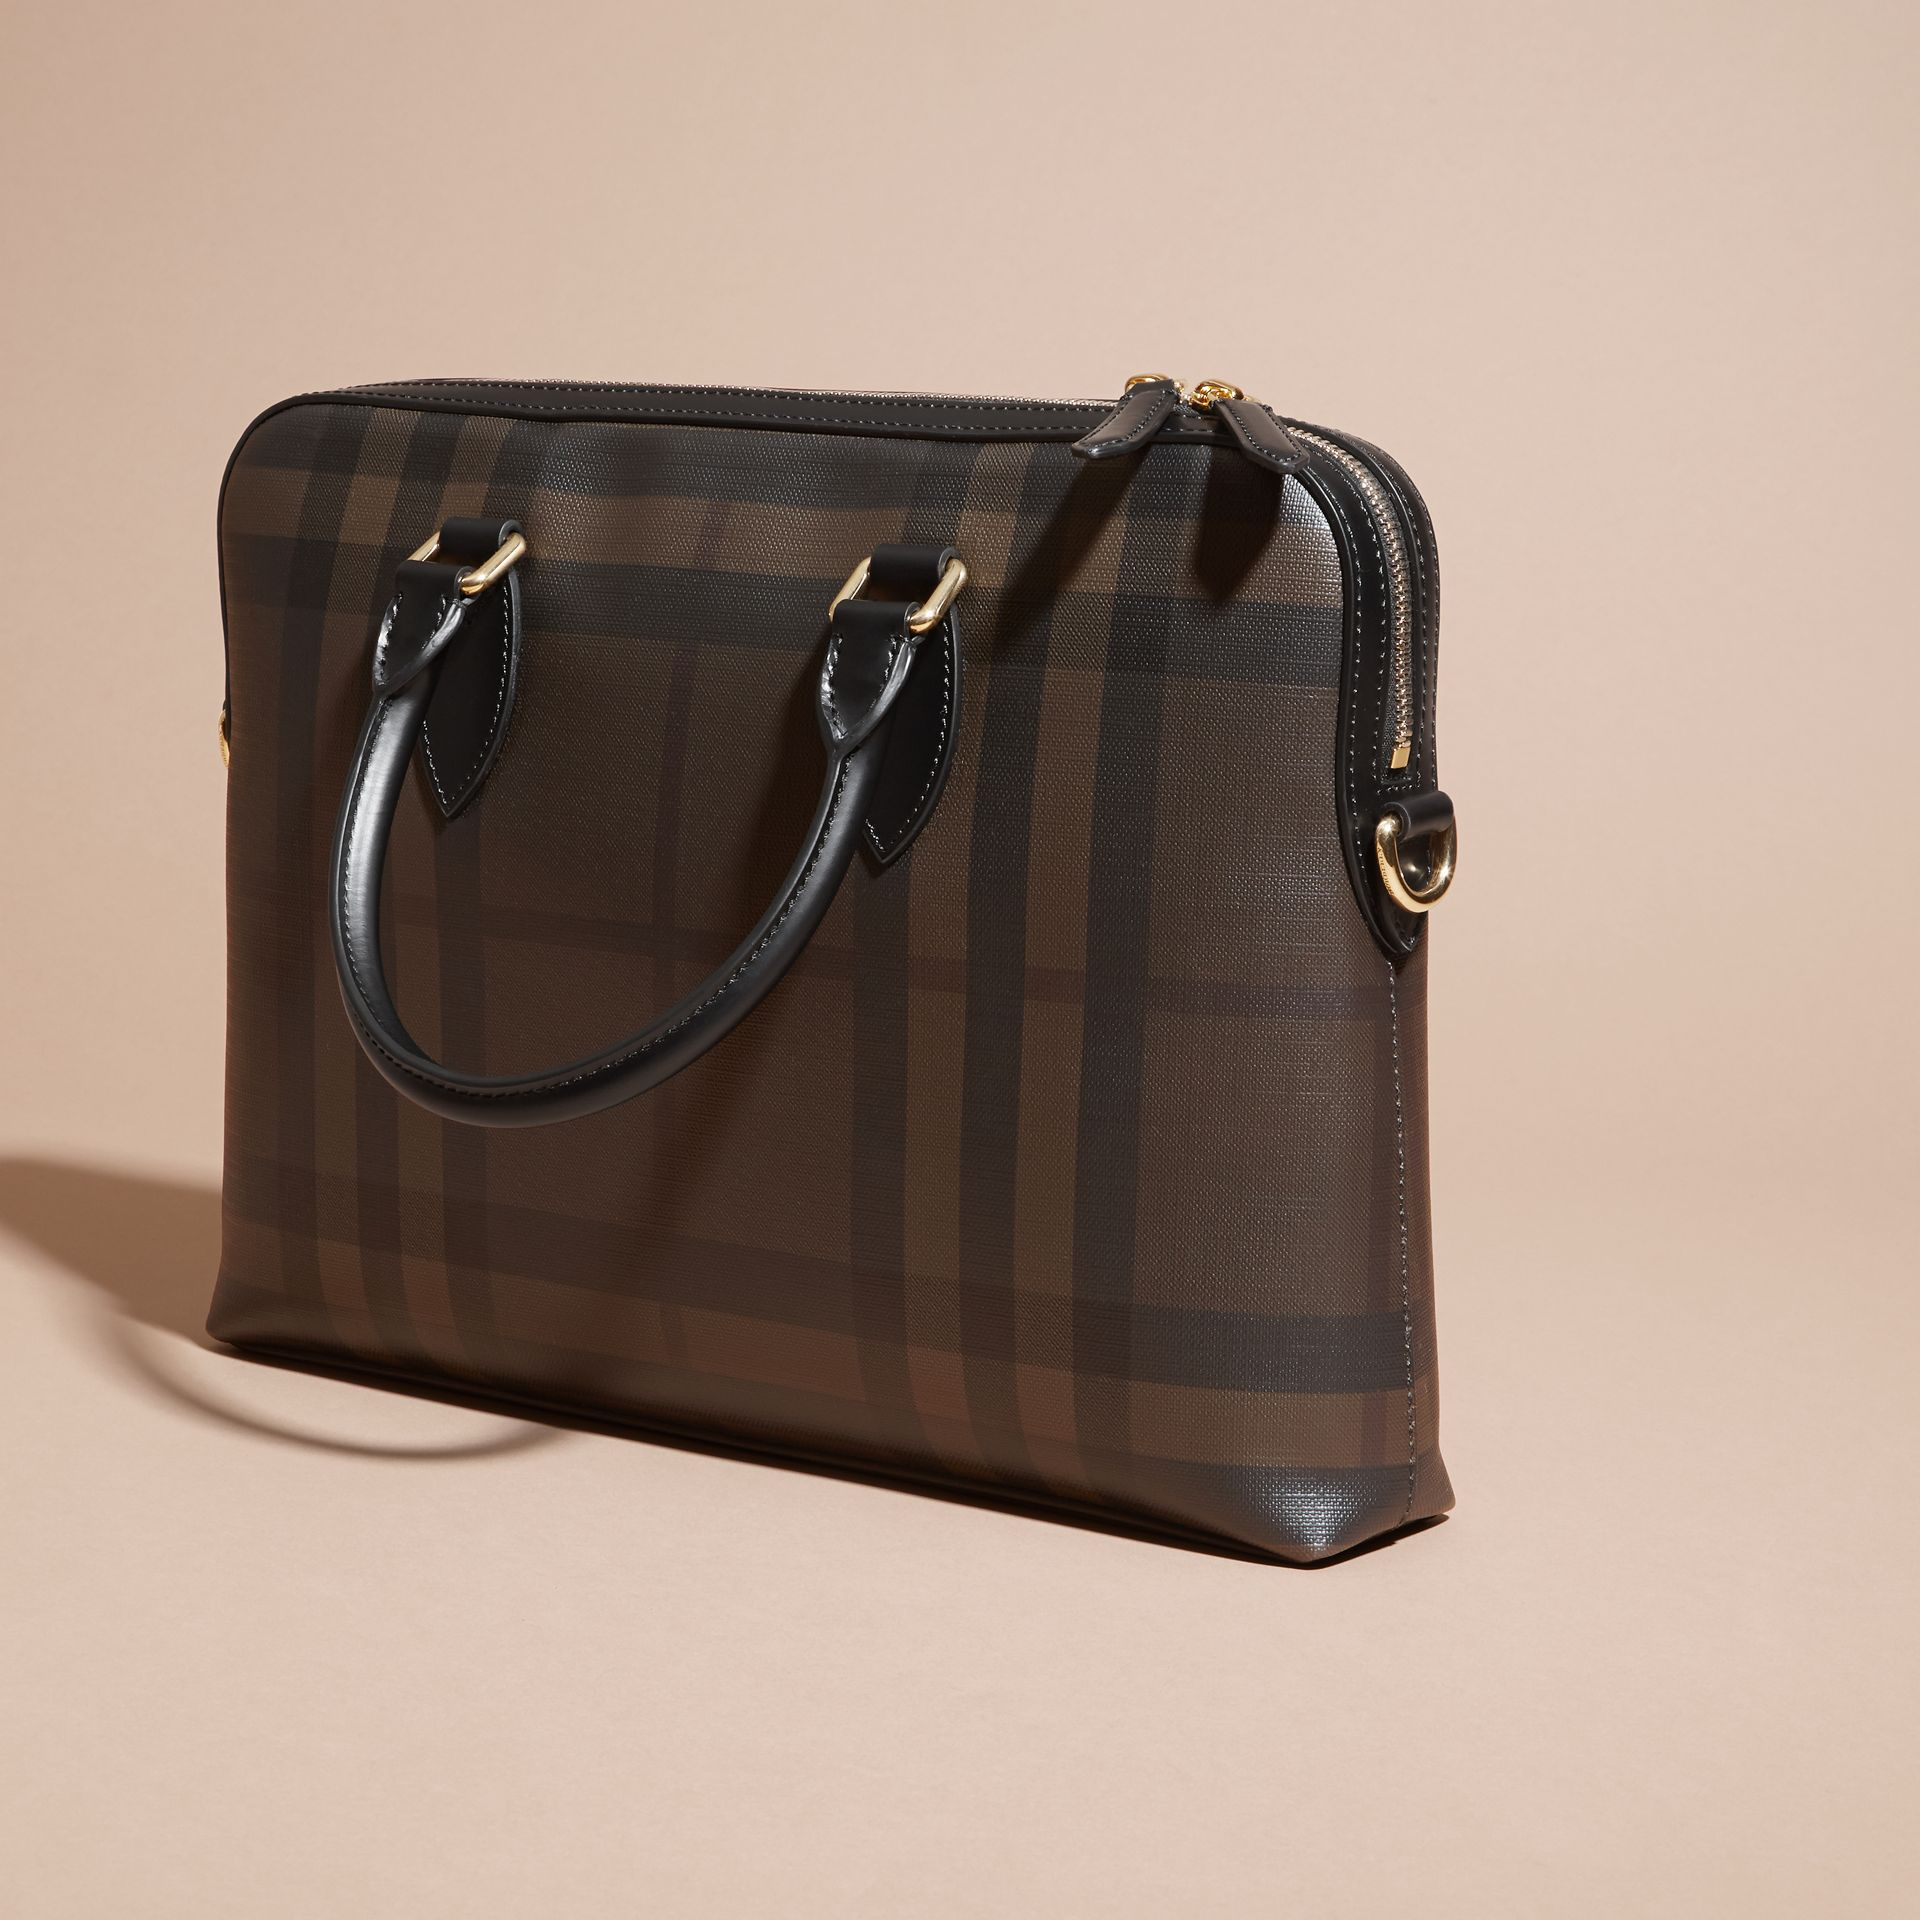 Sac The Barrow fin avec motif London check (Chocolat/noir) - photo de la galerie 7